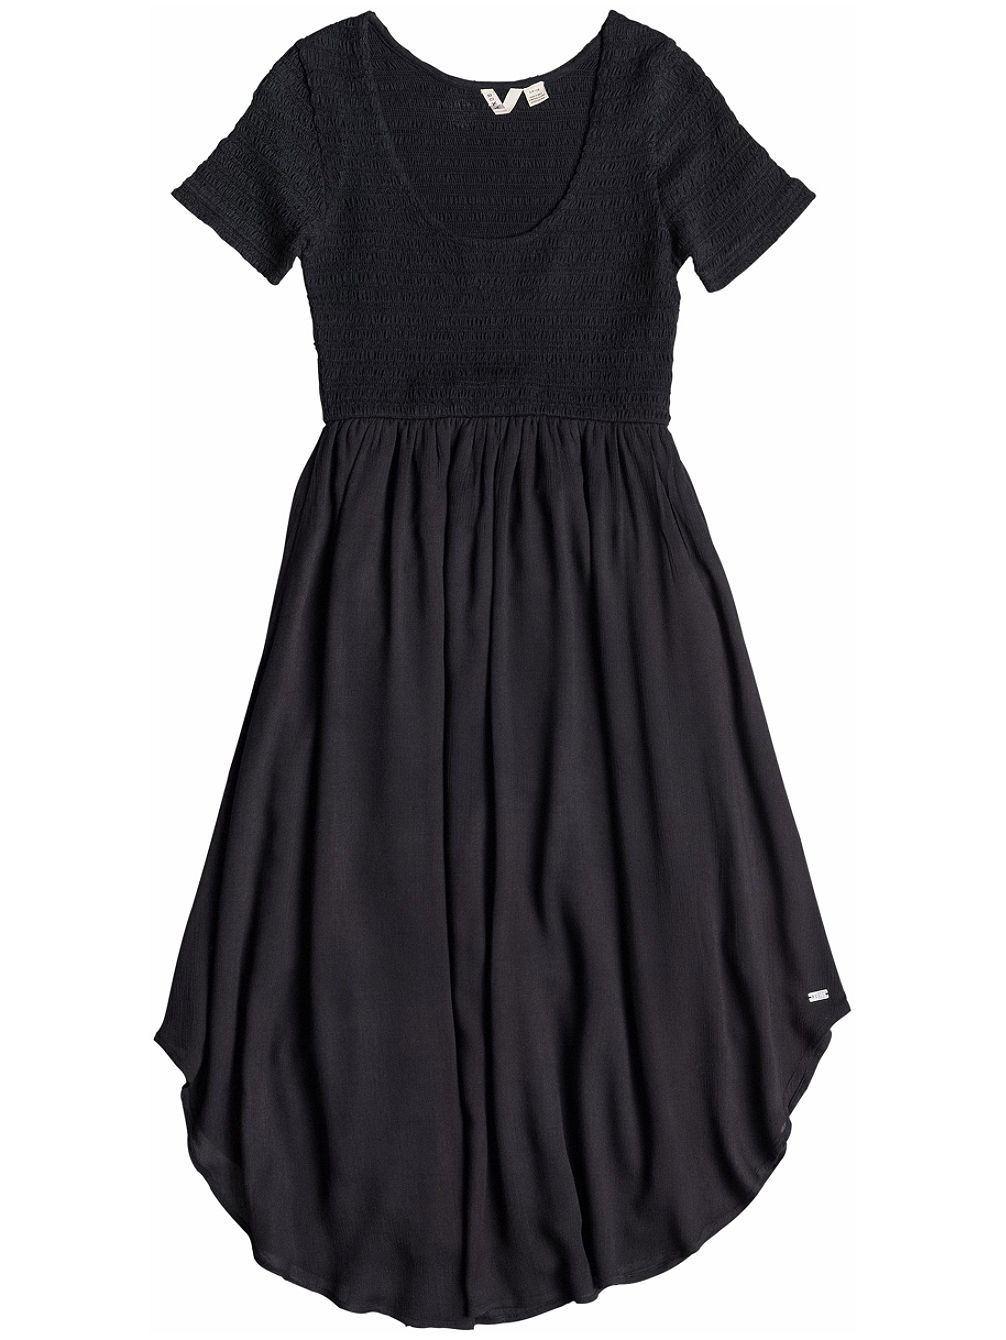 Roxy Tug Life Dress